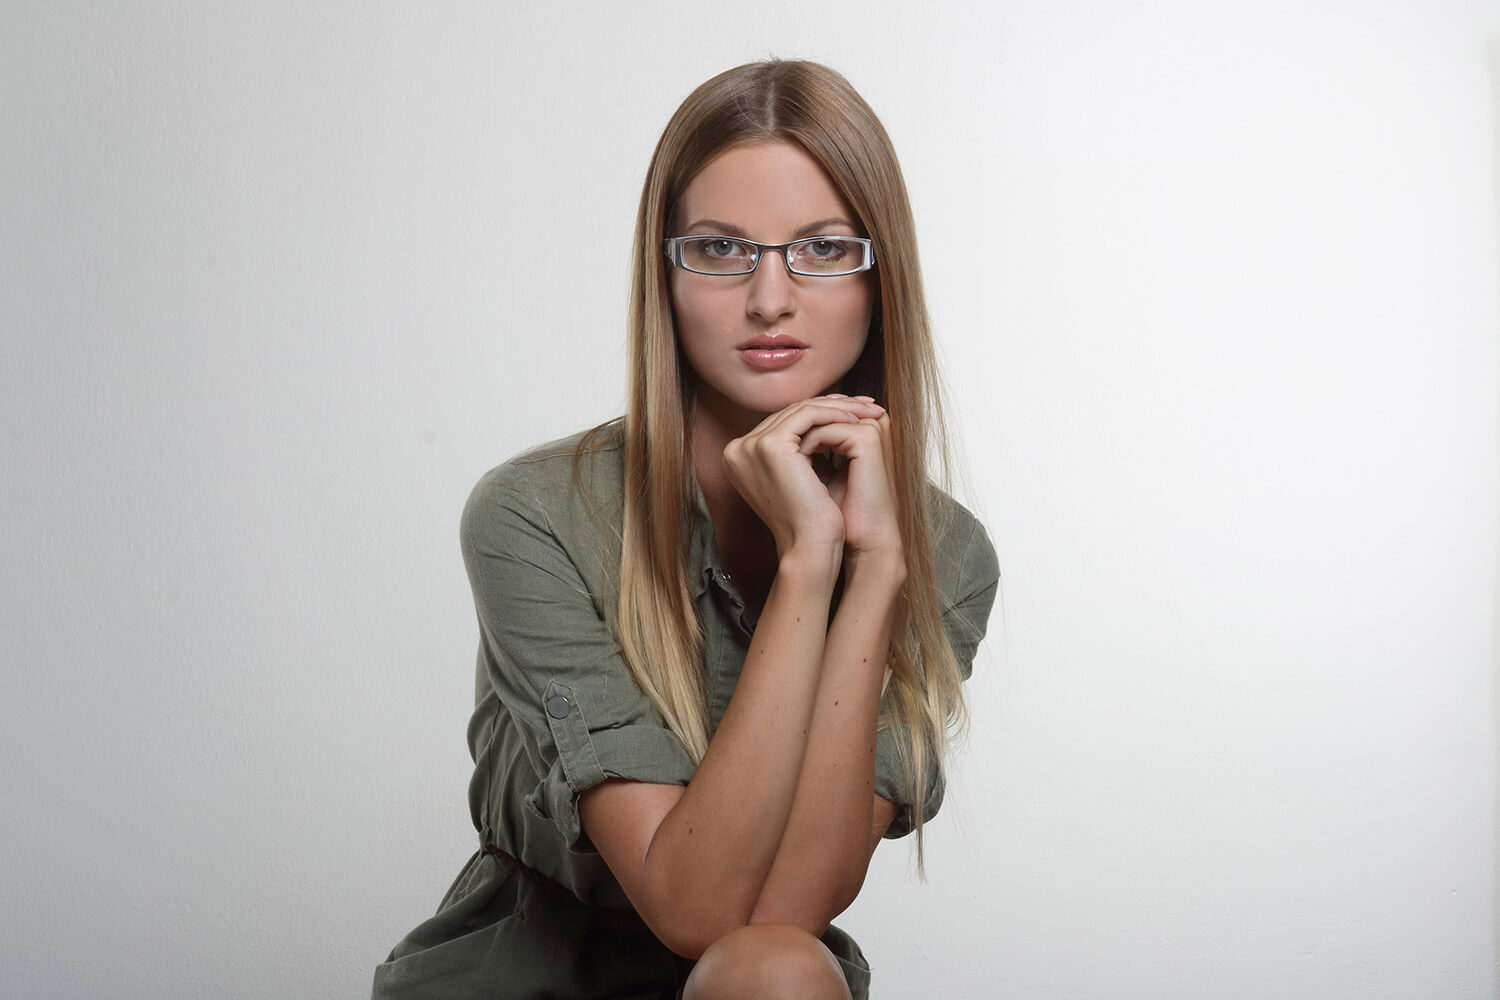 fashion photo of a woman in a green dress and glasses